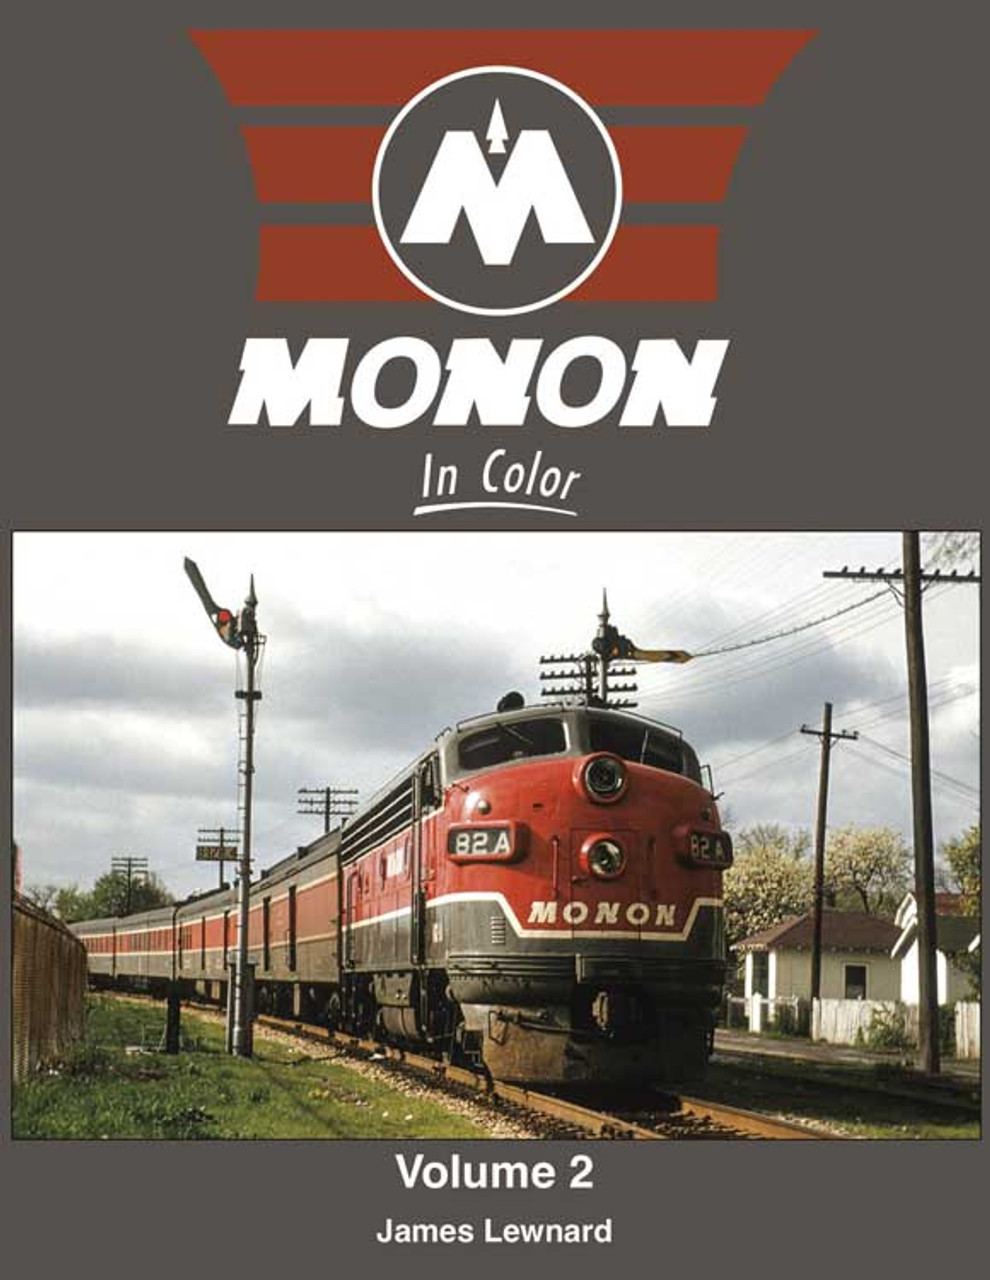 Monon in Color -- Volume 2 (Hardcover, 128 Pages)